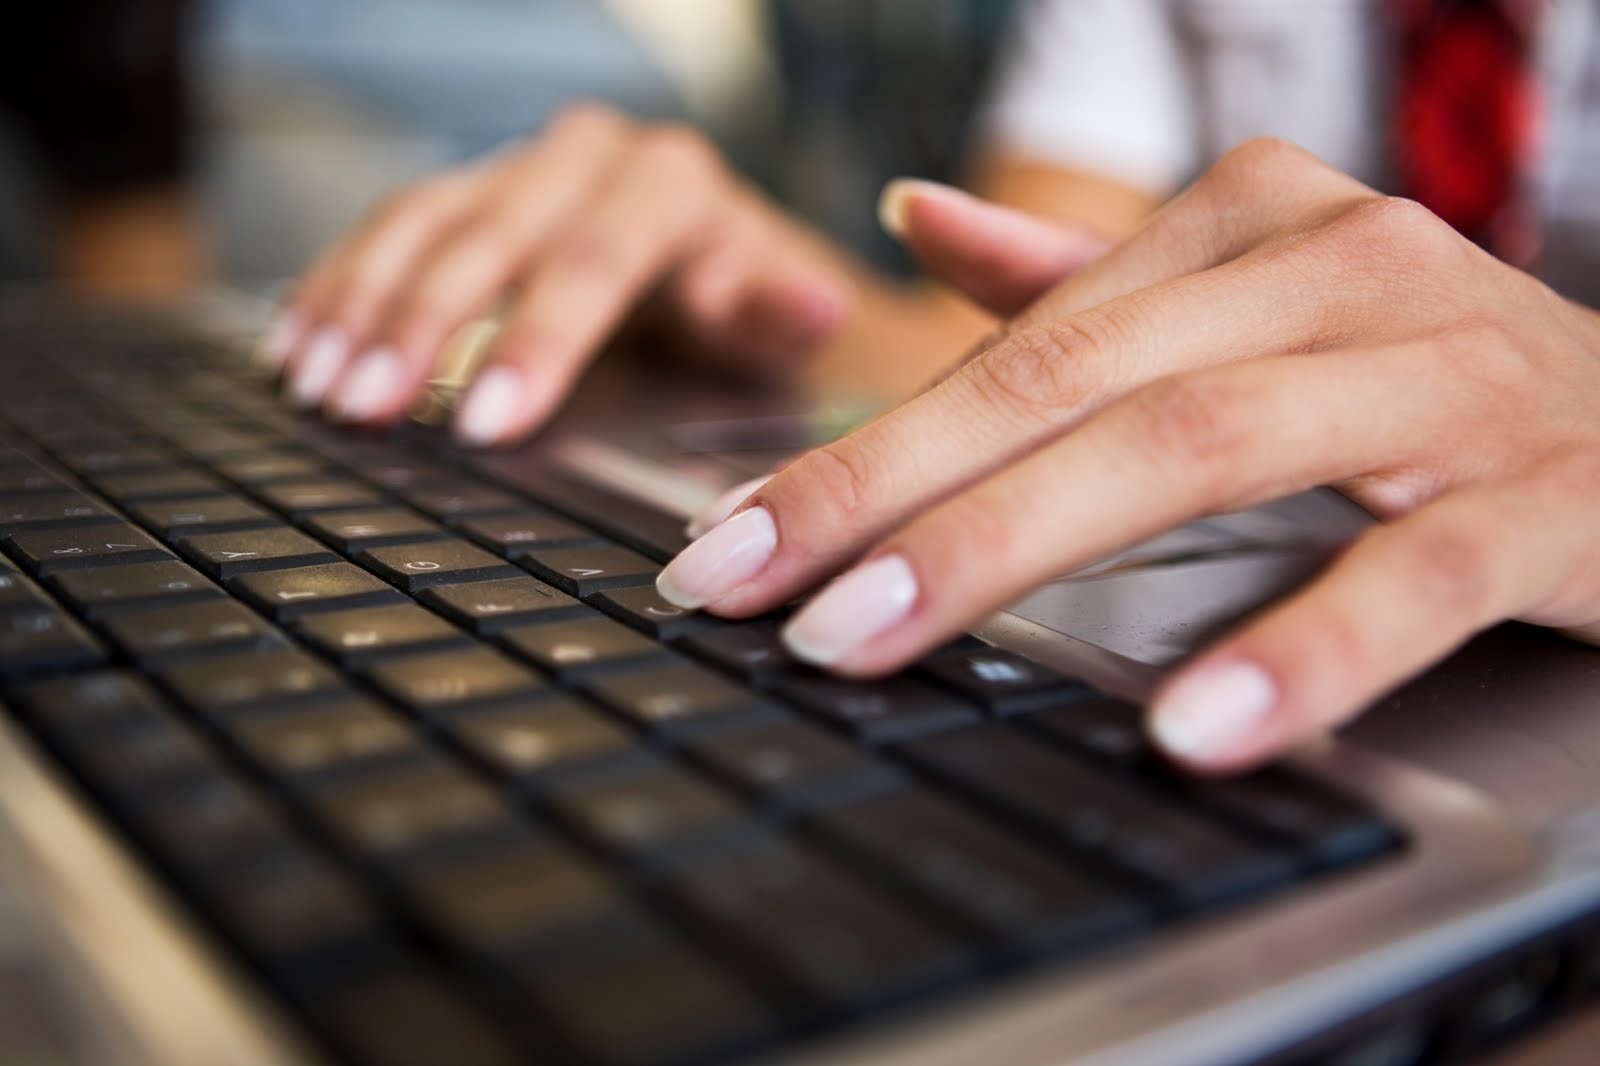 woman-typing-on-keyboard - The Typing DepartmentThe Typing Department